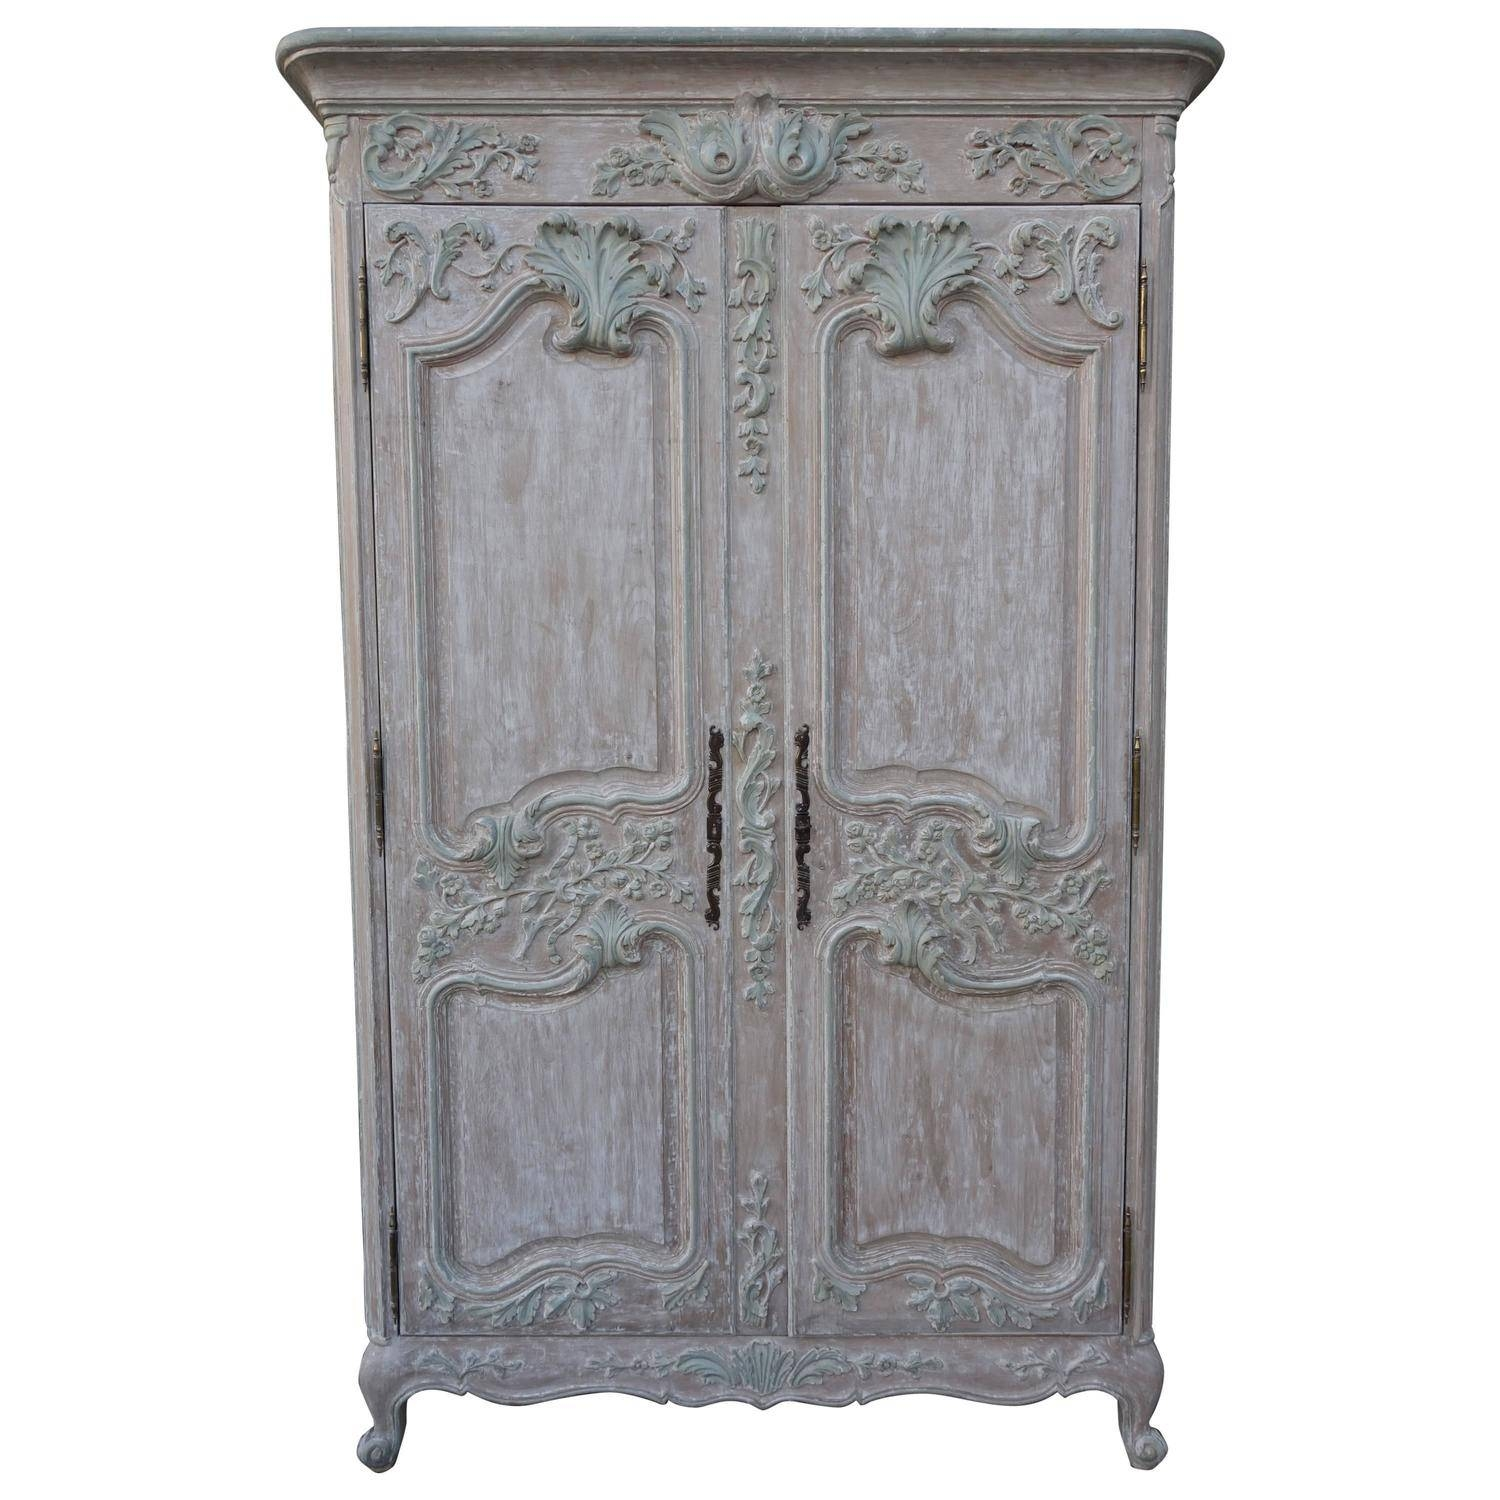 French Louis Xv Style Carved Painted Armoire | Melissa Levinson pertaining to French Style Wardrobes (Image 4 of 15)